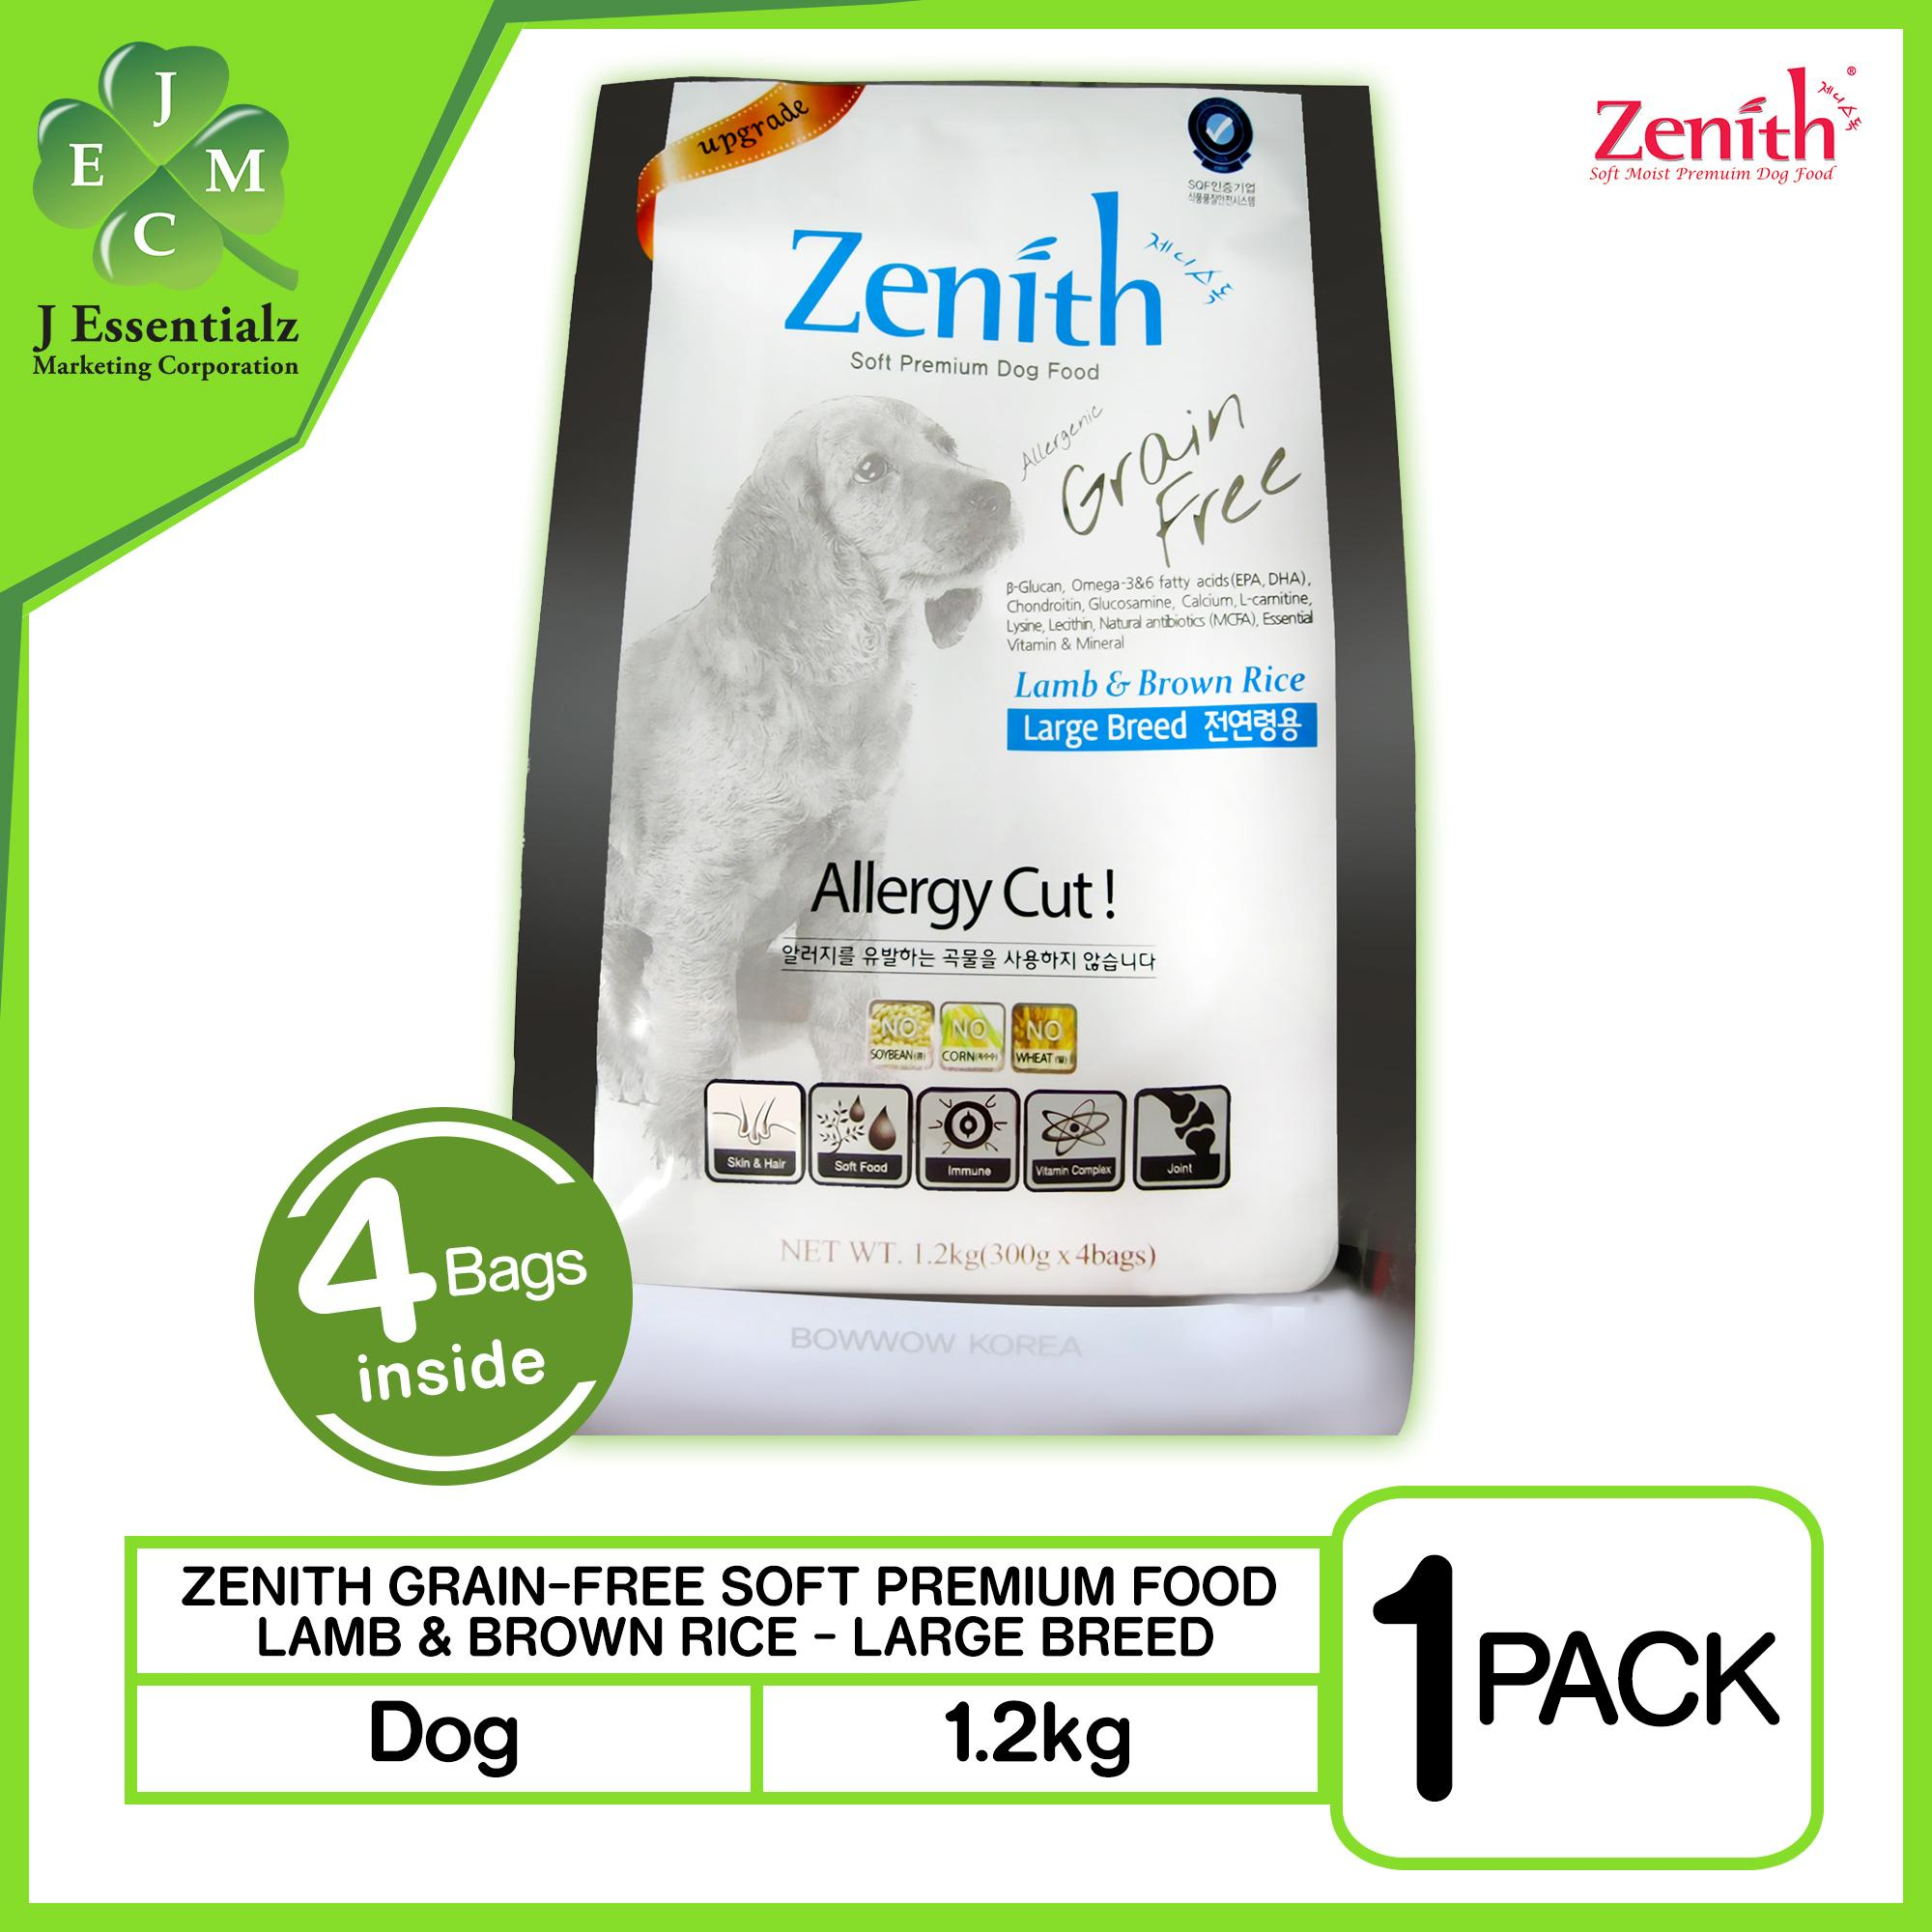 Zenith 1033- Zenith Grain-Free Soft Premium Food Lamb & Brown Rice - LARGE  BREED